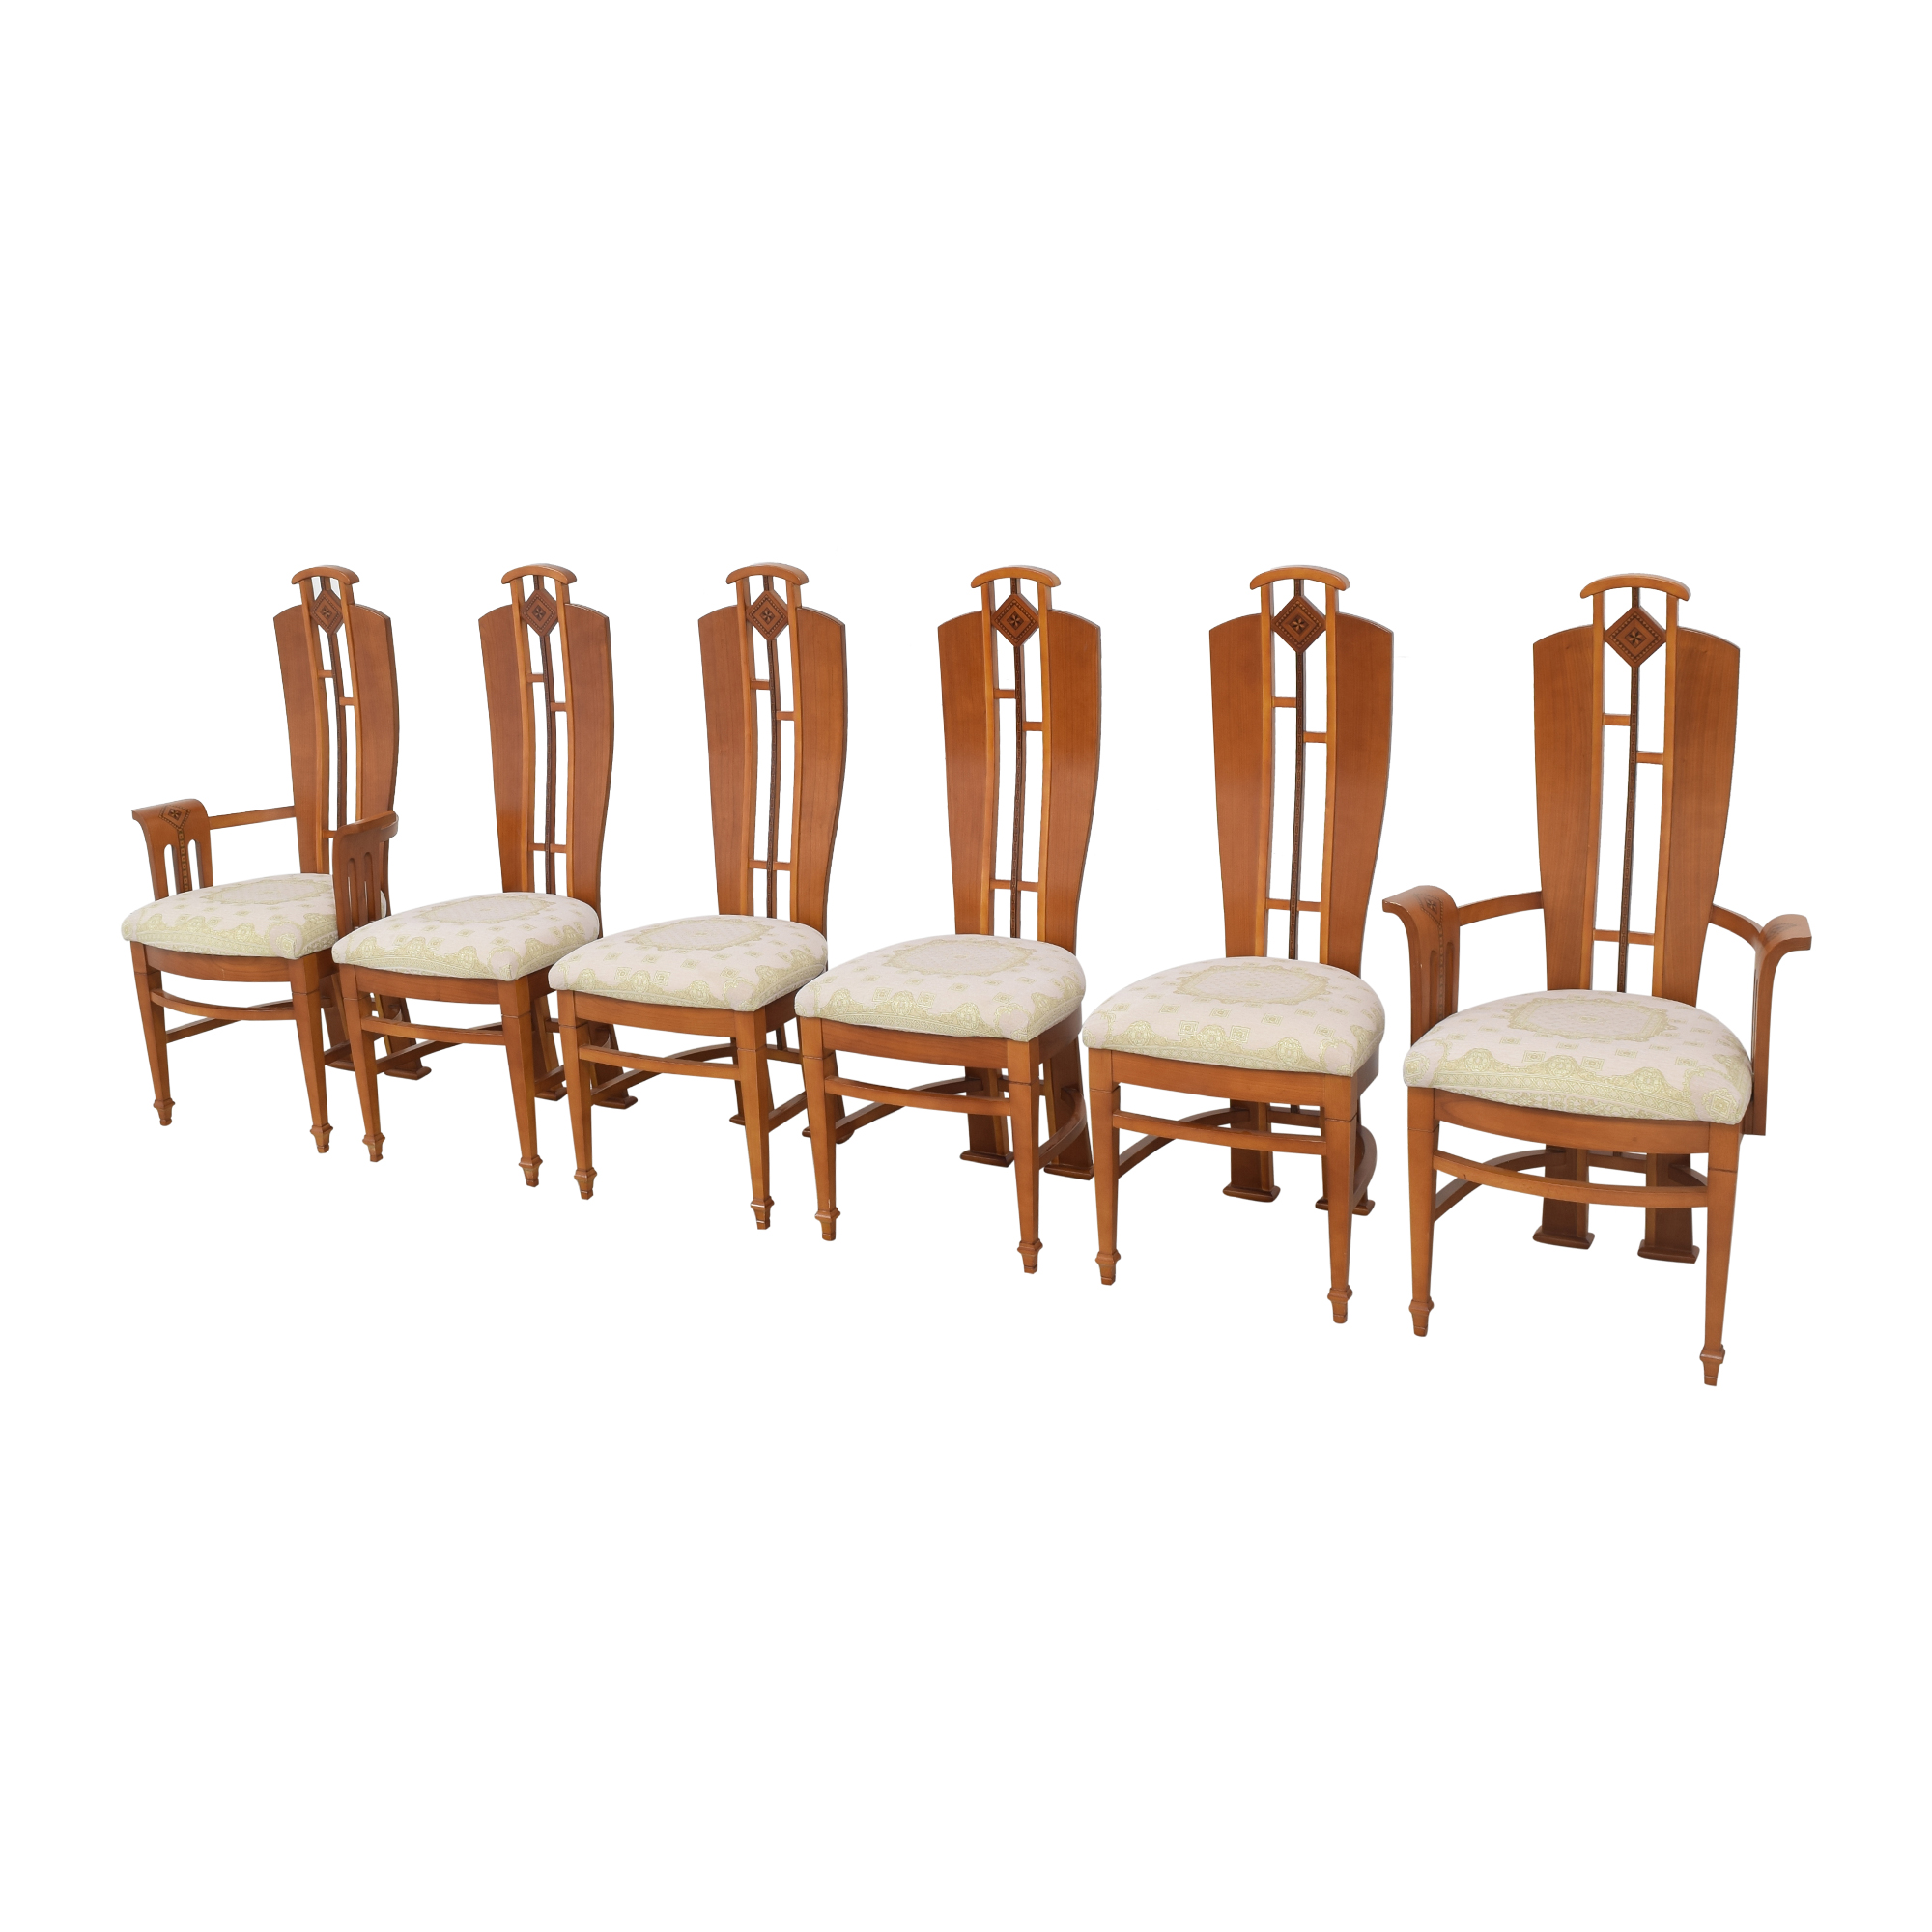 World Of Decor Dining Chairs Chairs